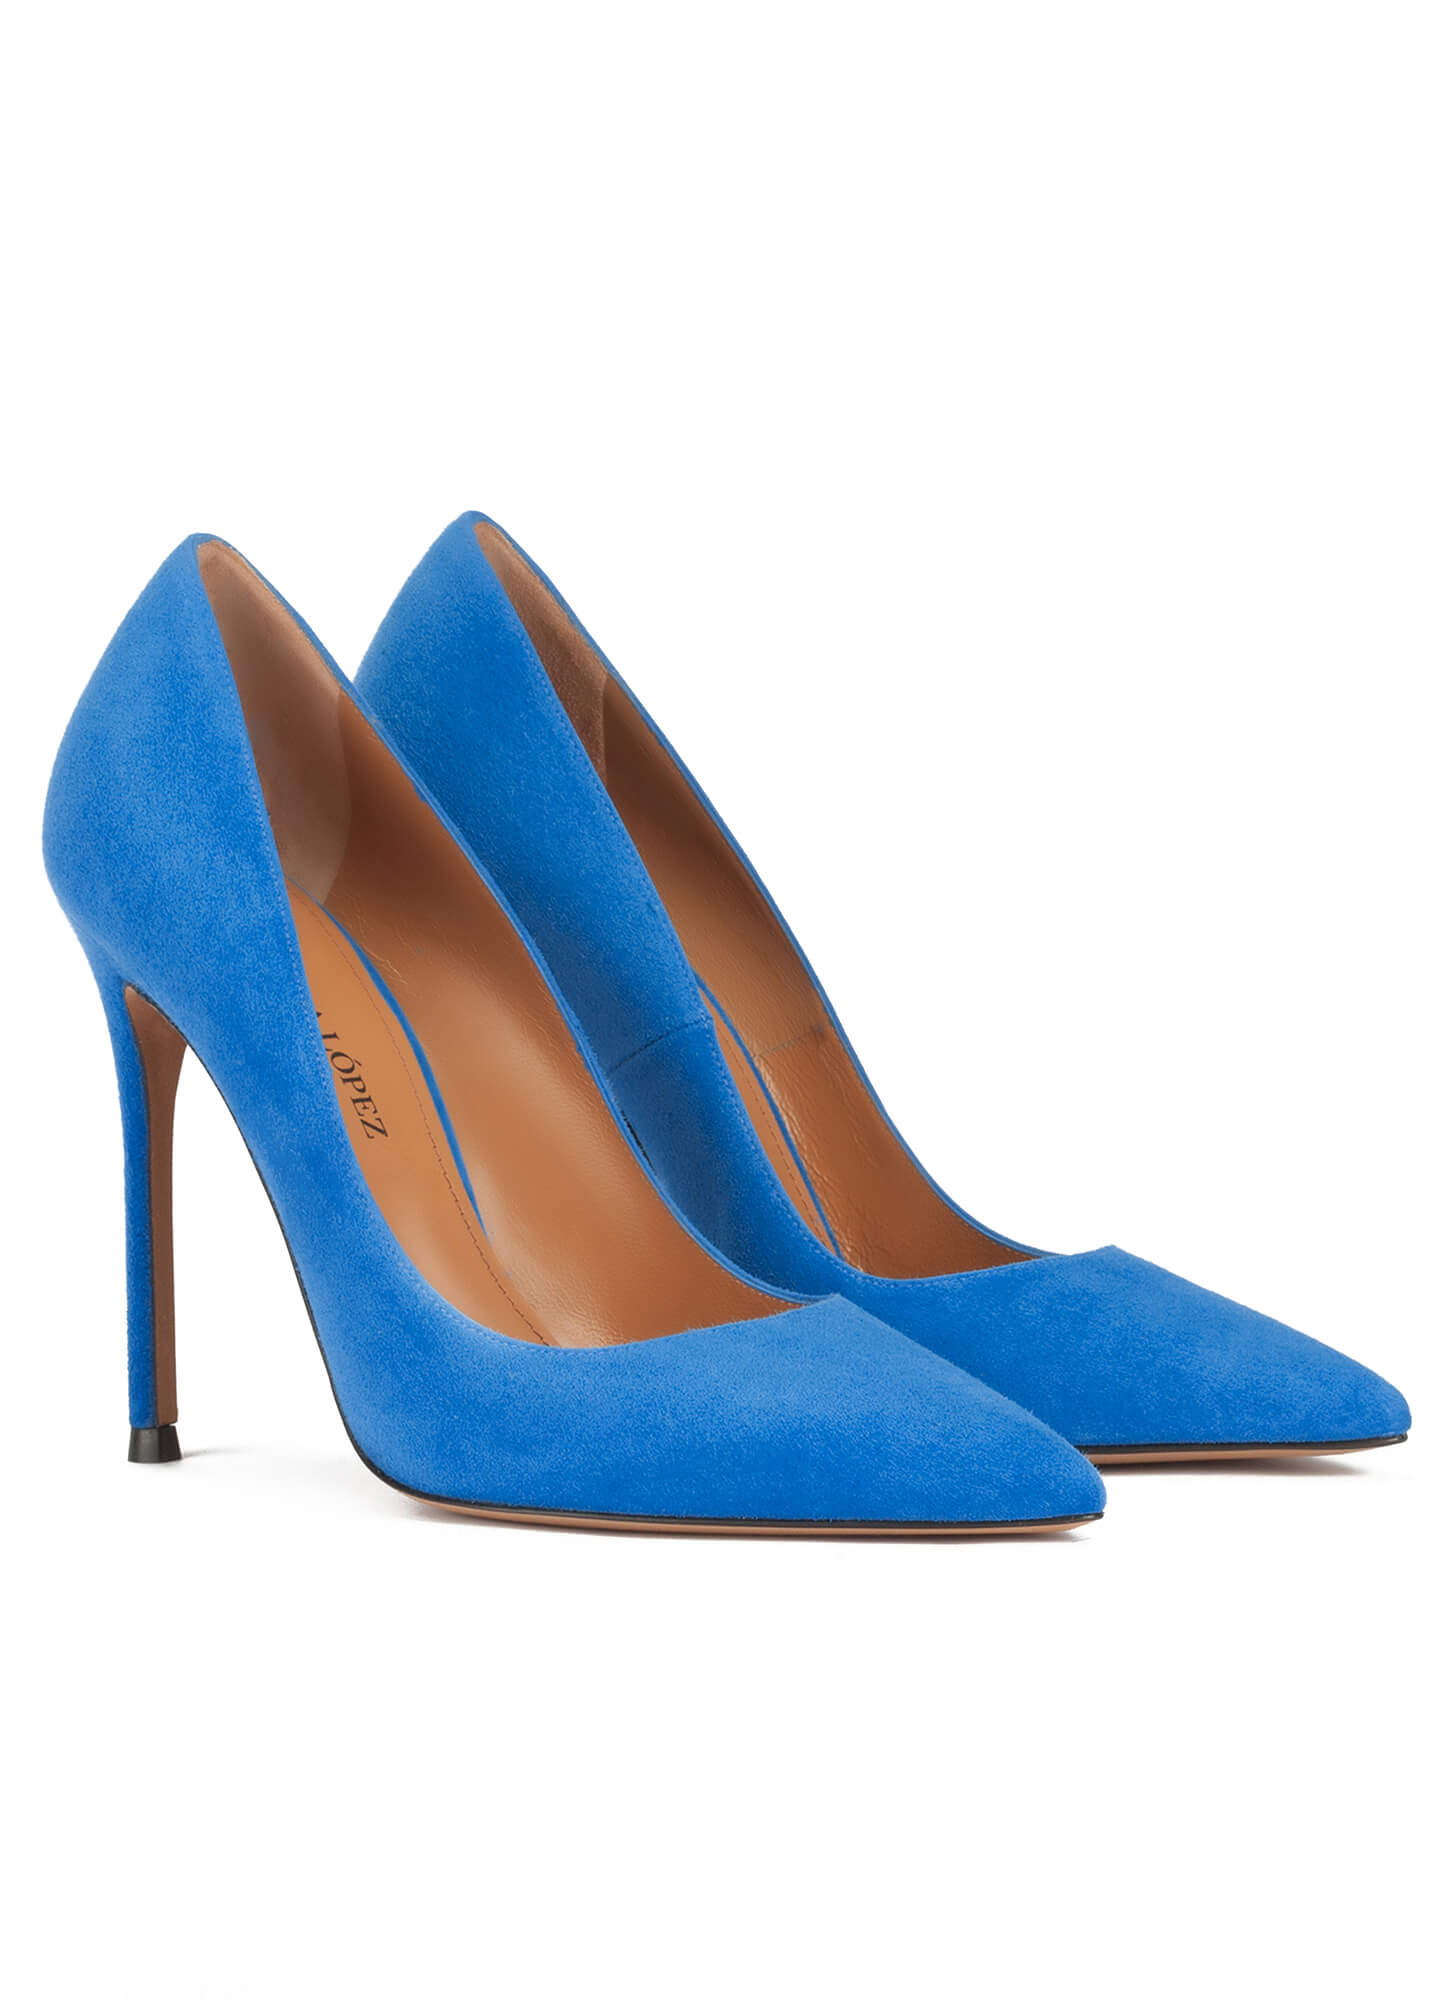 e21056104 Stiletto heel point-toe pumps in royal blue suede . PURA LOPEZ